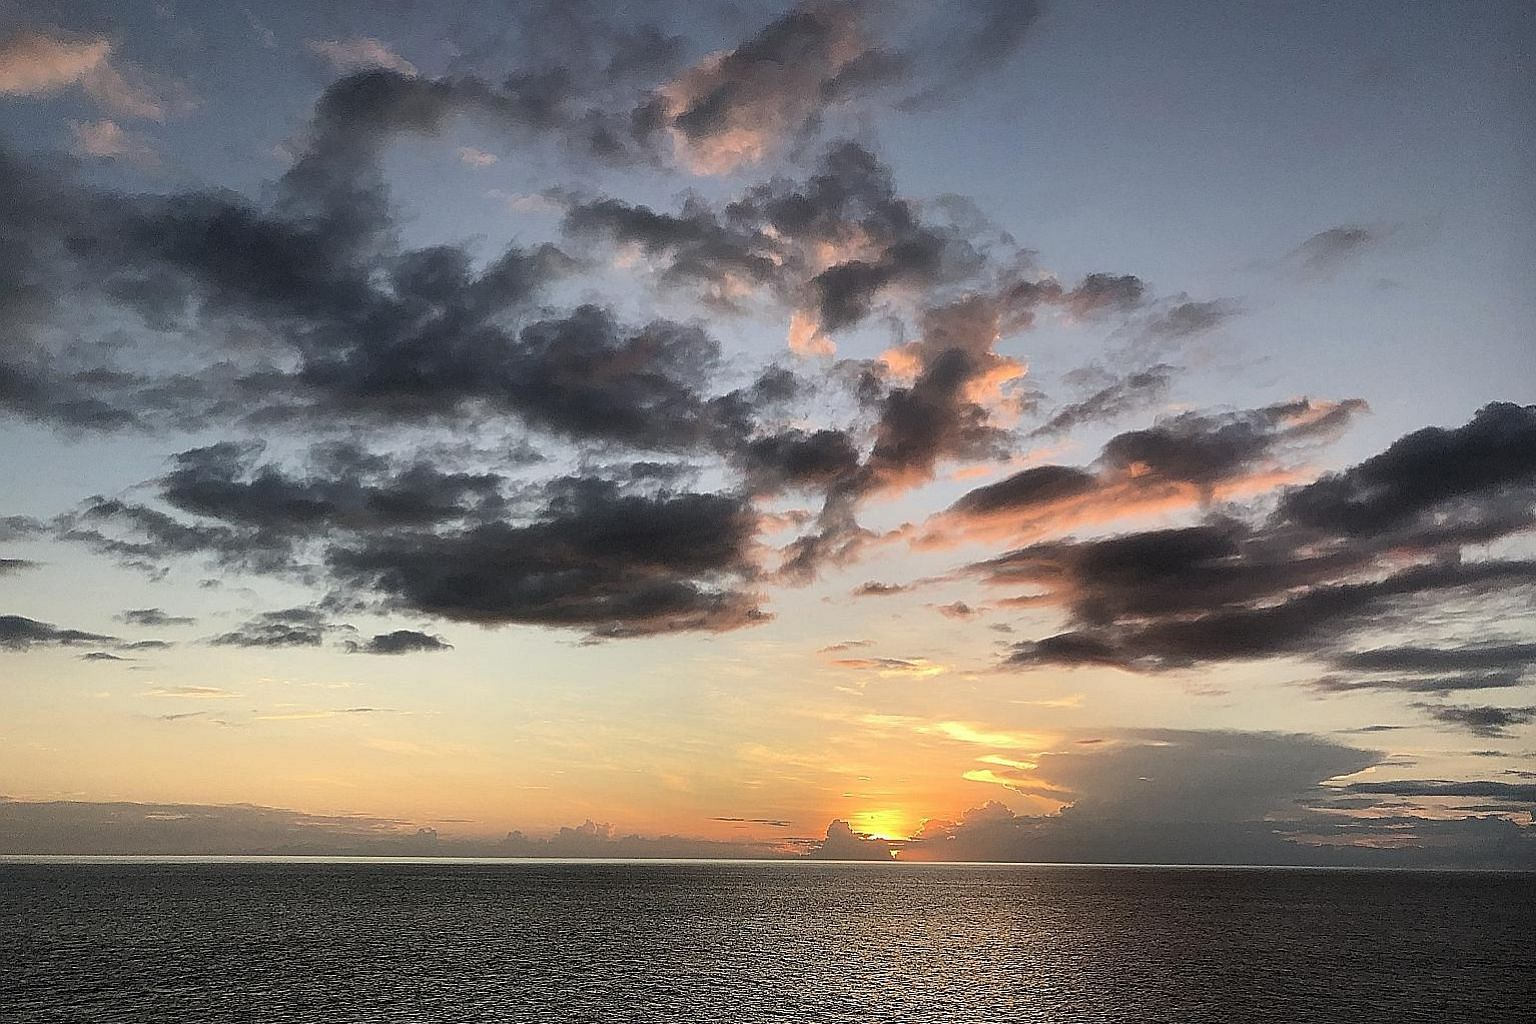 The Cocos Island off Costa Rica, with native birds in the foreground. During the voyage, the writer met people whose lives may appear simpler than those in the city but they are closer to what the natural world offers and make the most of it. Sunset